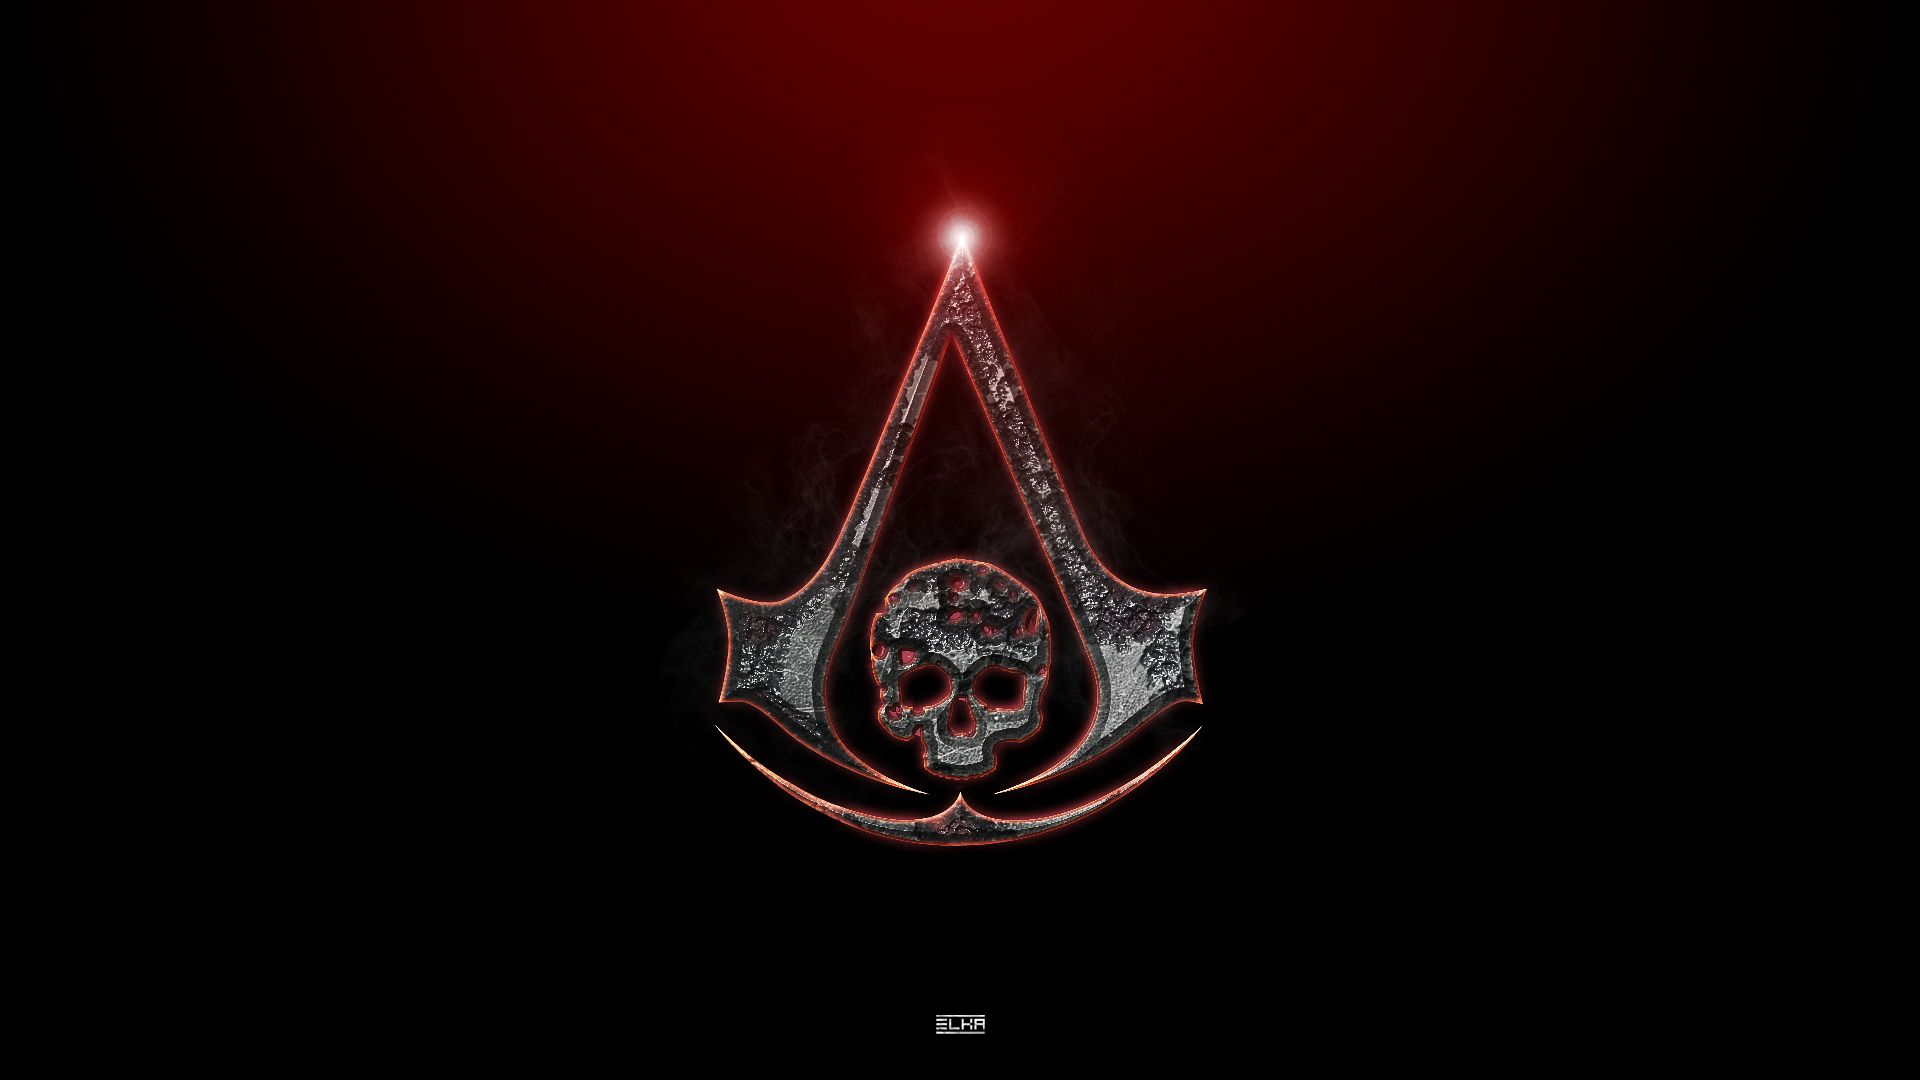 Pin By M A Carpenter On Assassins Creed Assassins Creed 4 Game